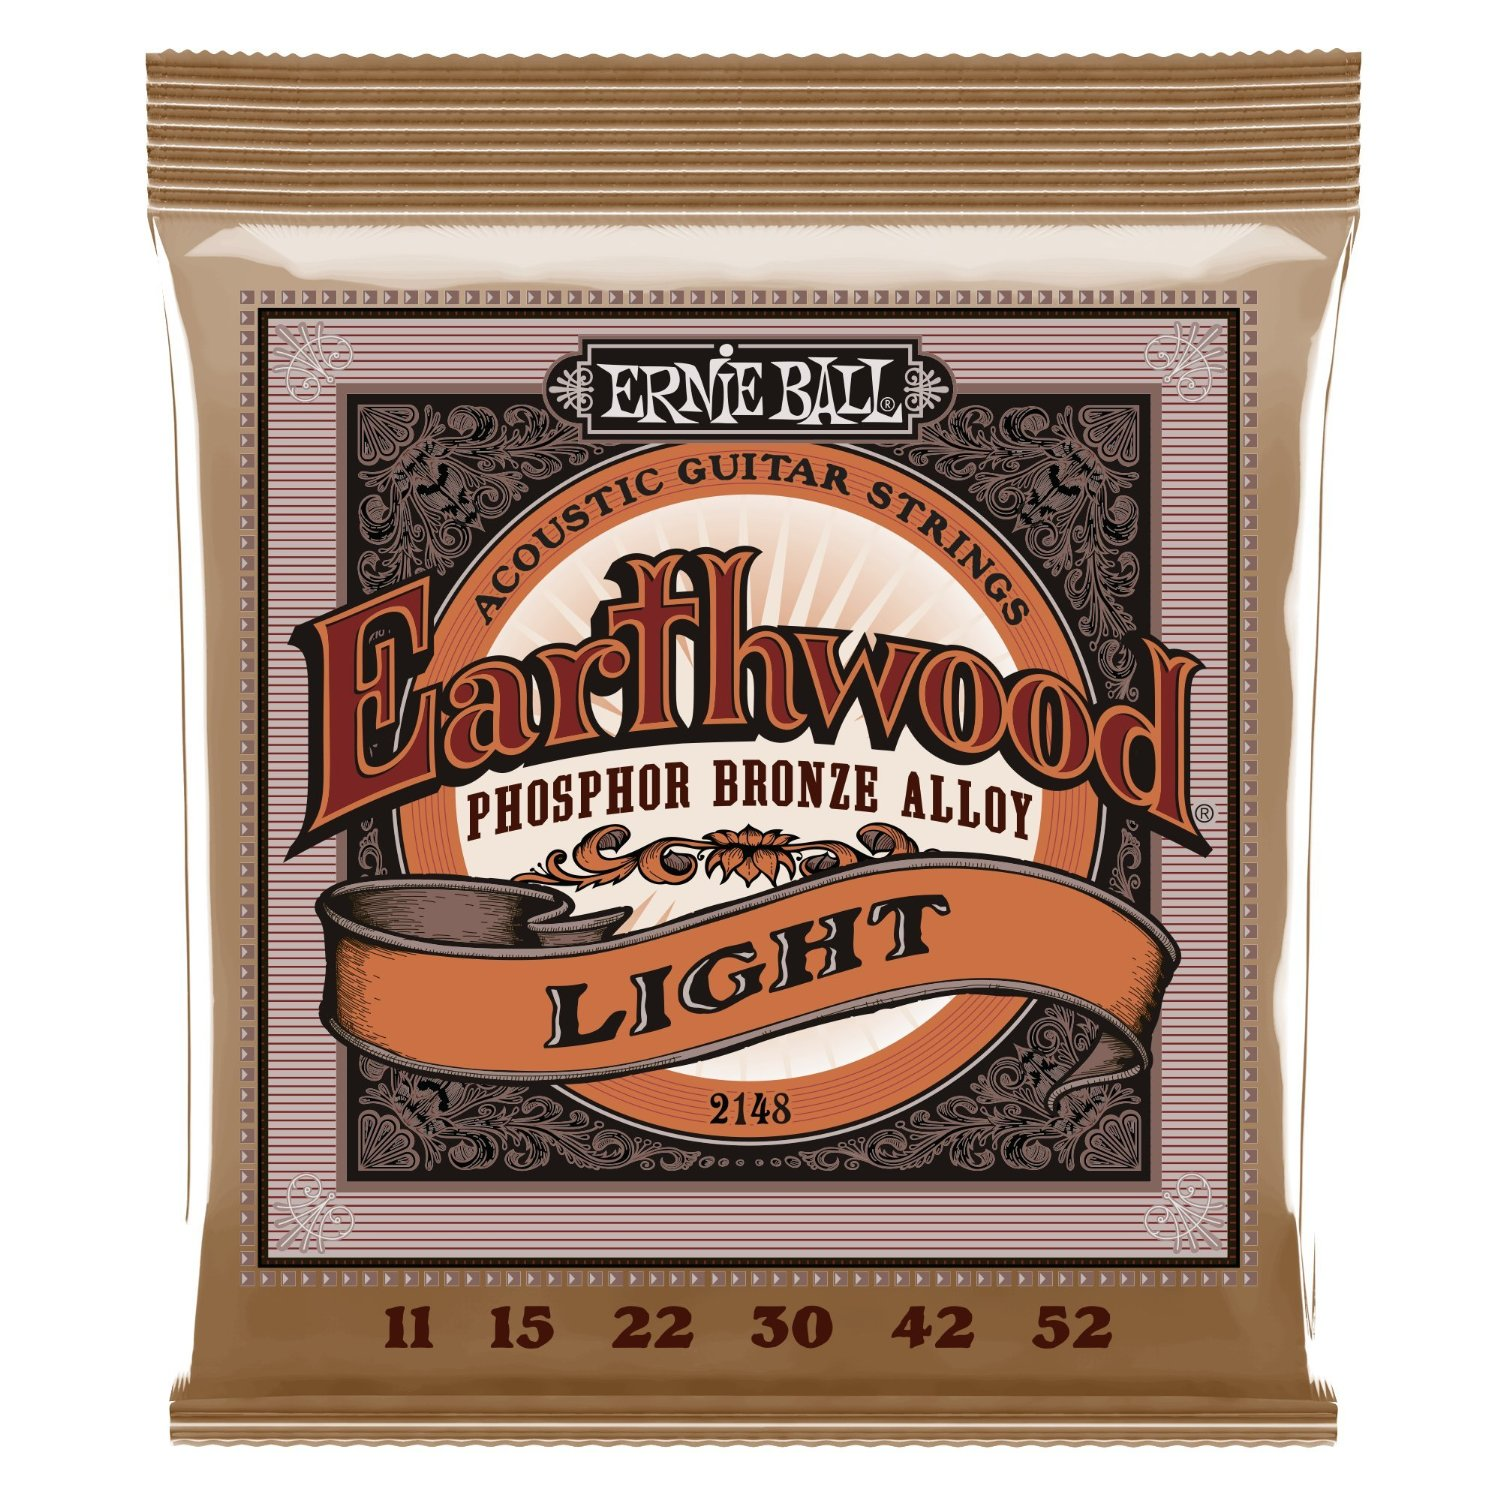 Ernie Ball Earthwood Light Phosphor Bronze Acoustic String Set, .011 .052 by Ernie Ball